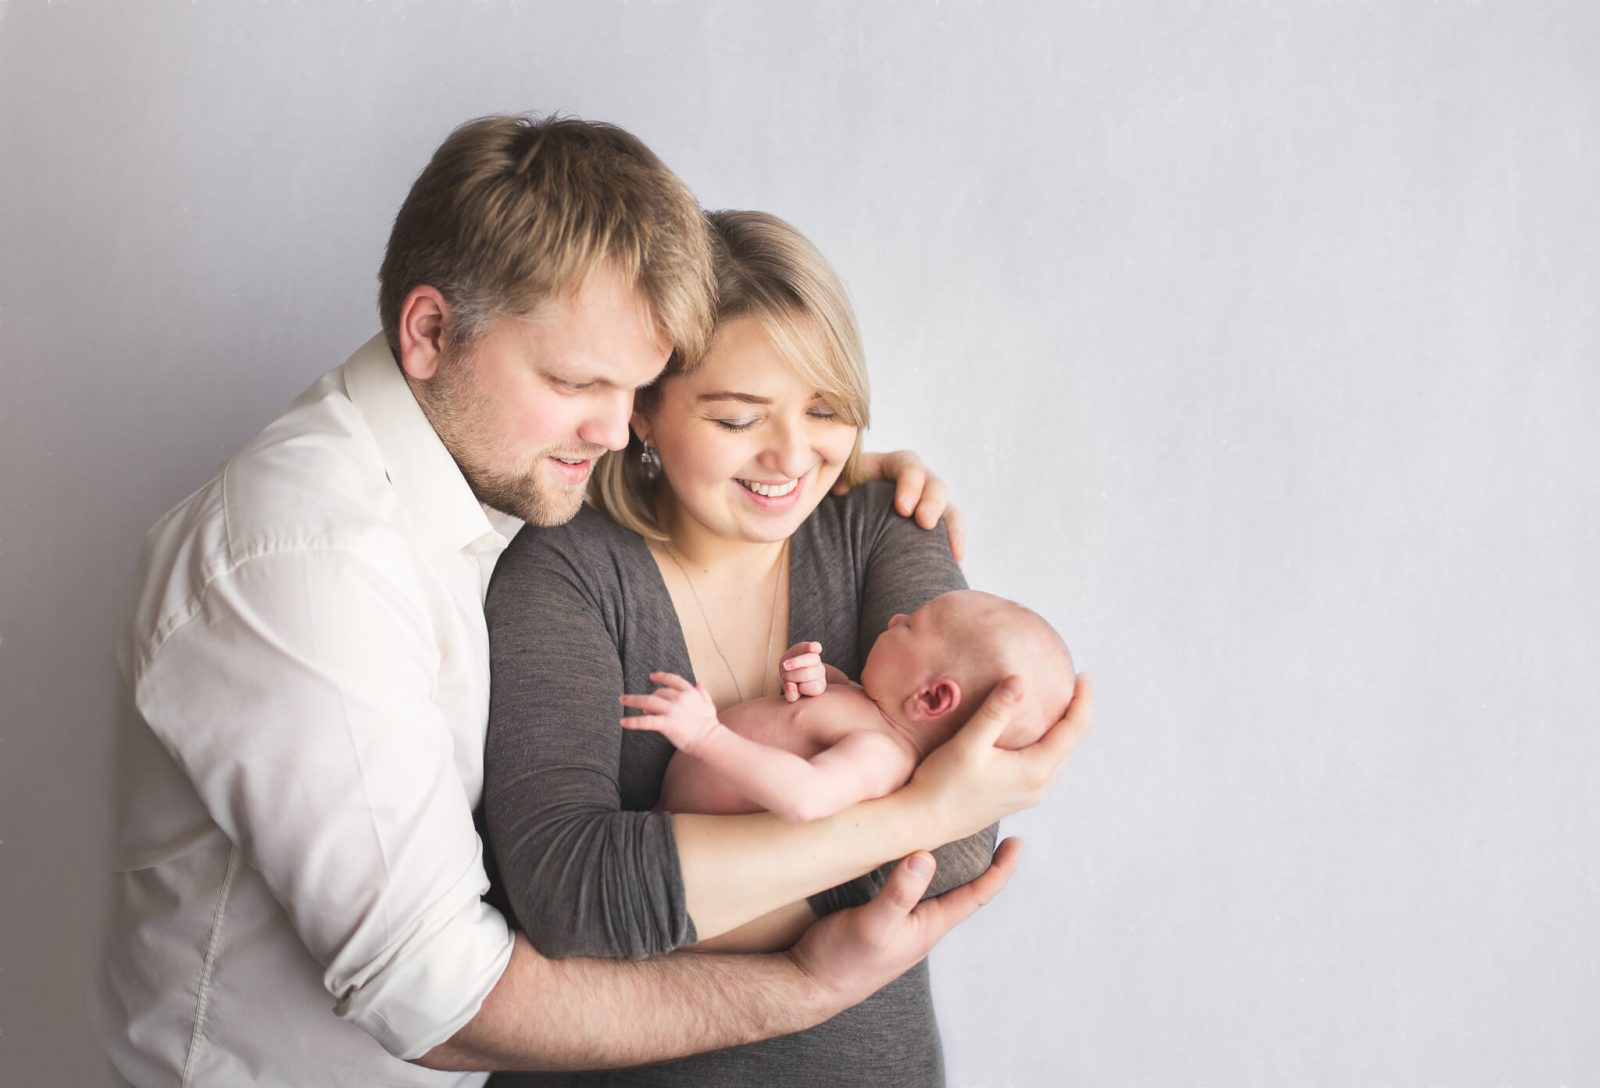 family portrait photographer in North London EvaGud photography